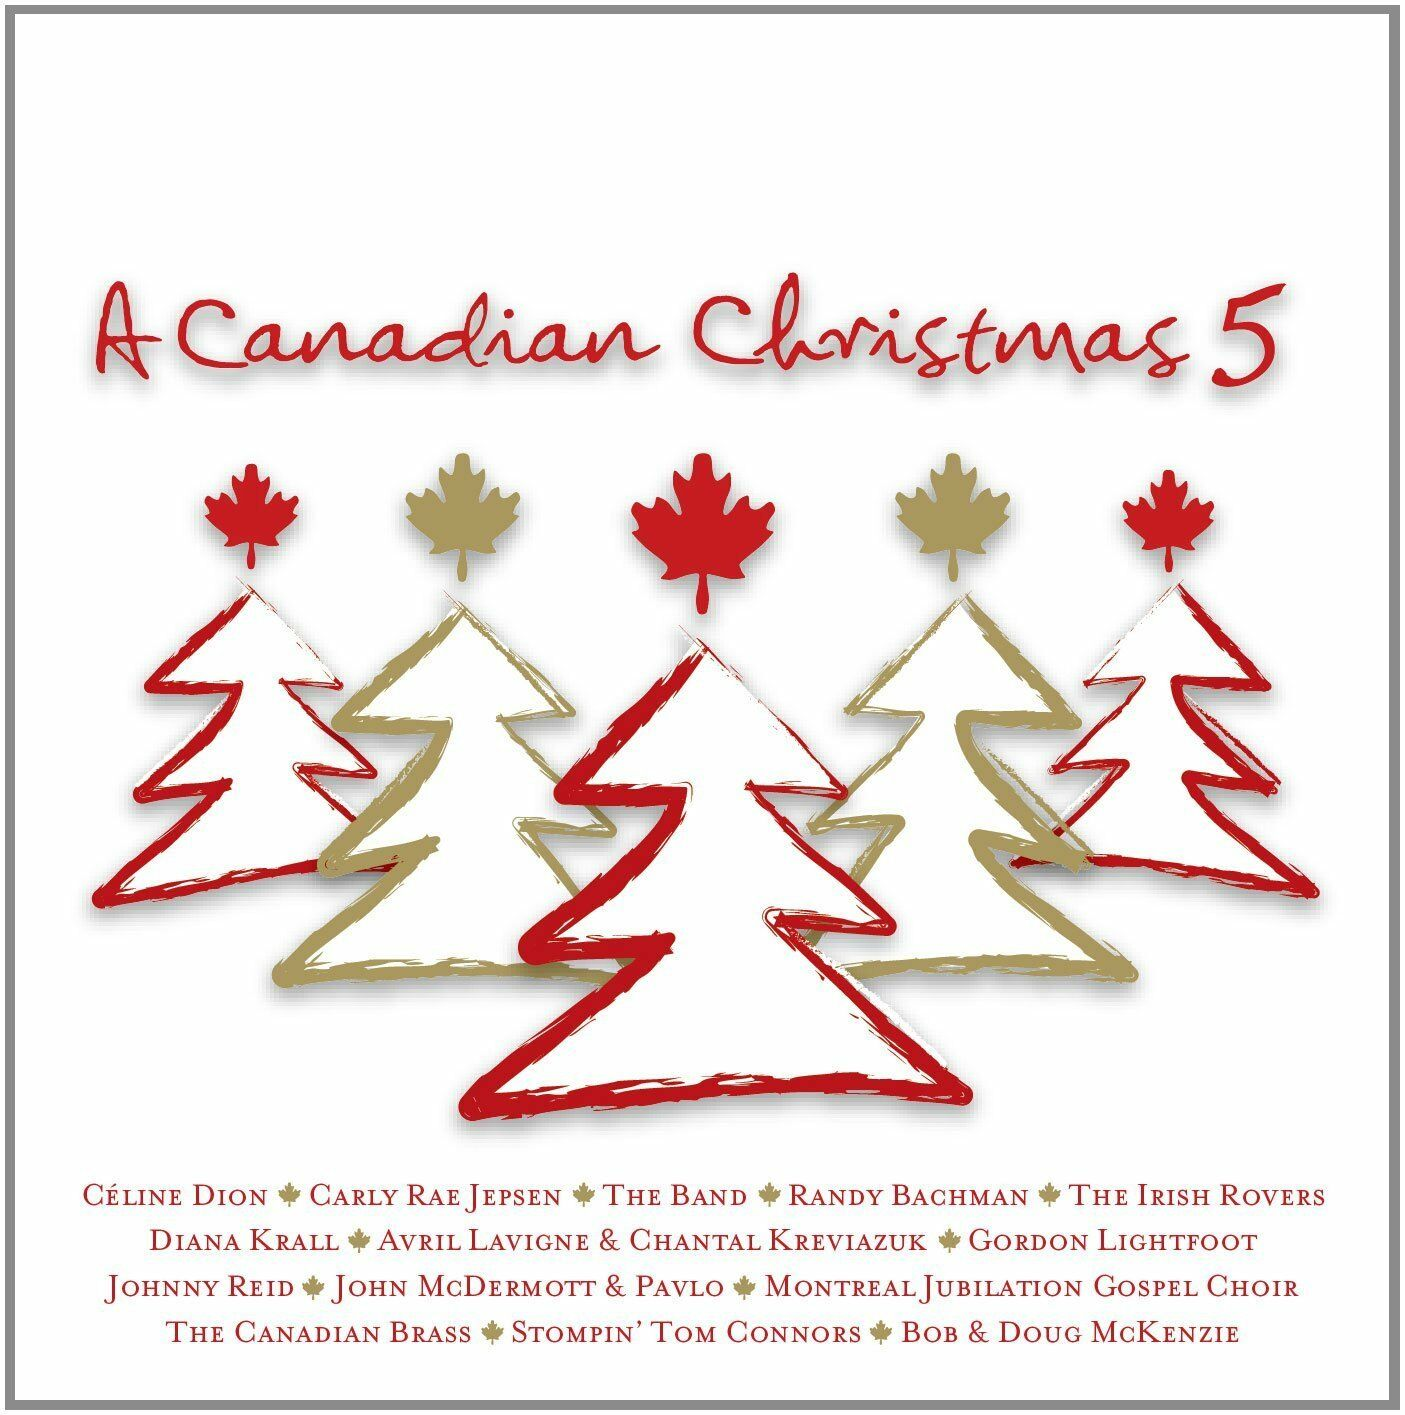 CANADIAN CHRISTMAS, VOL. 5 by Various Artists (CD) NEW - $10.99 ...